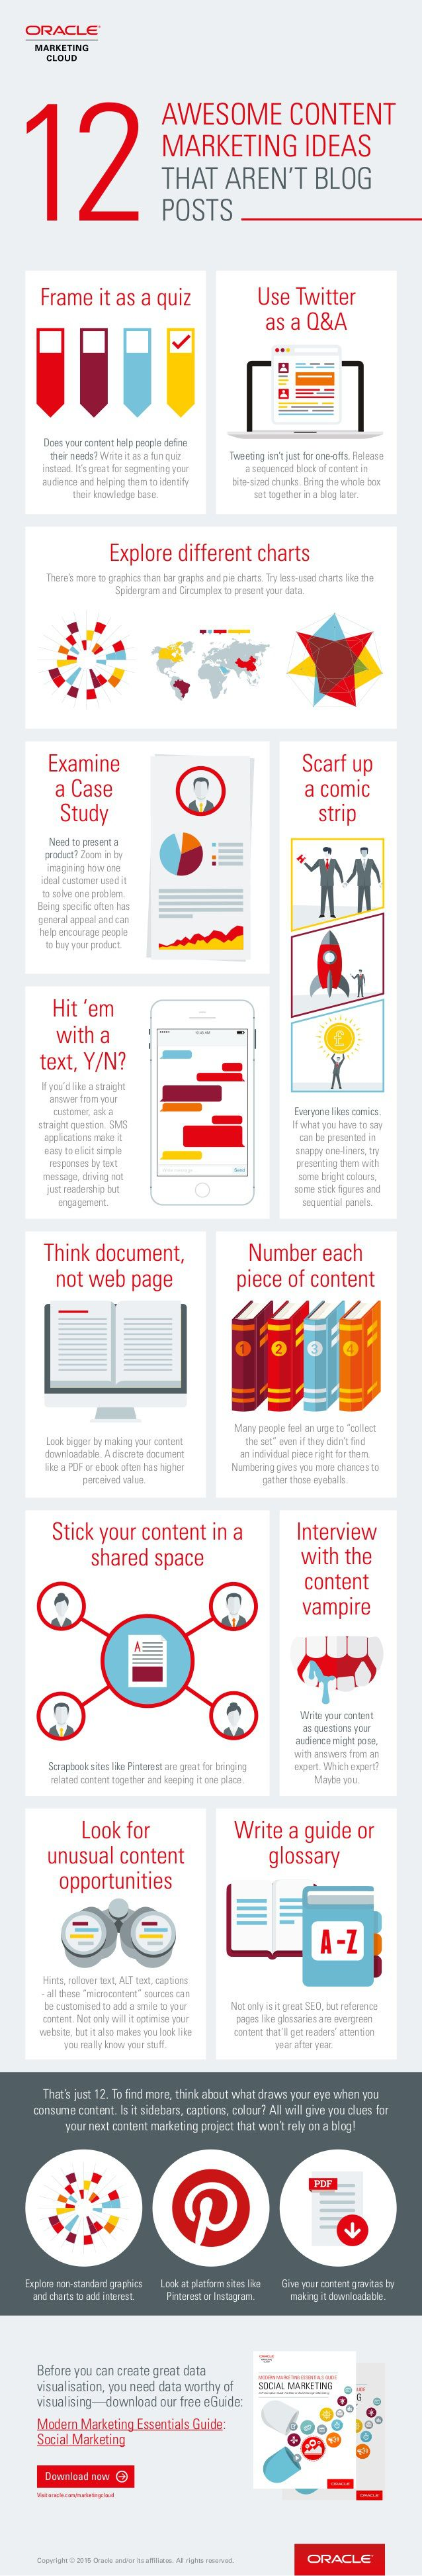 12 Awesome #content #marketing ideas that aren't blog posts [#infographic]